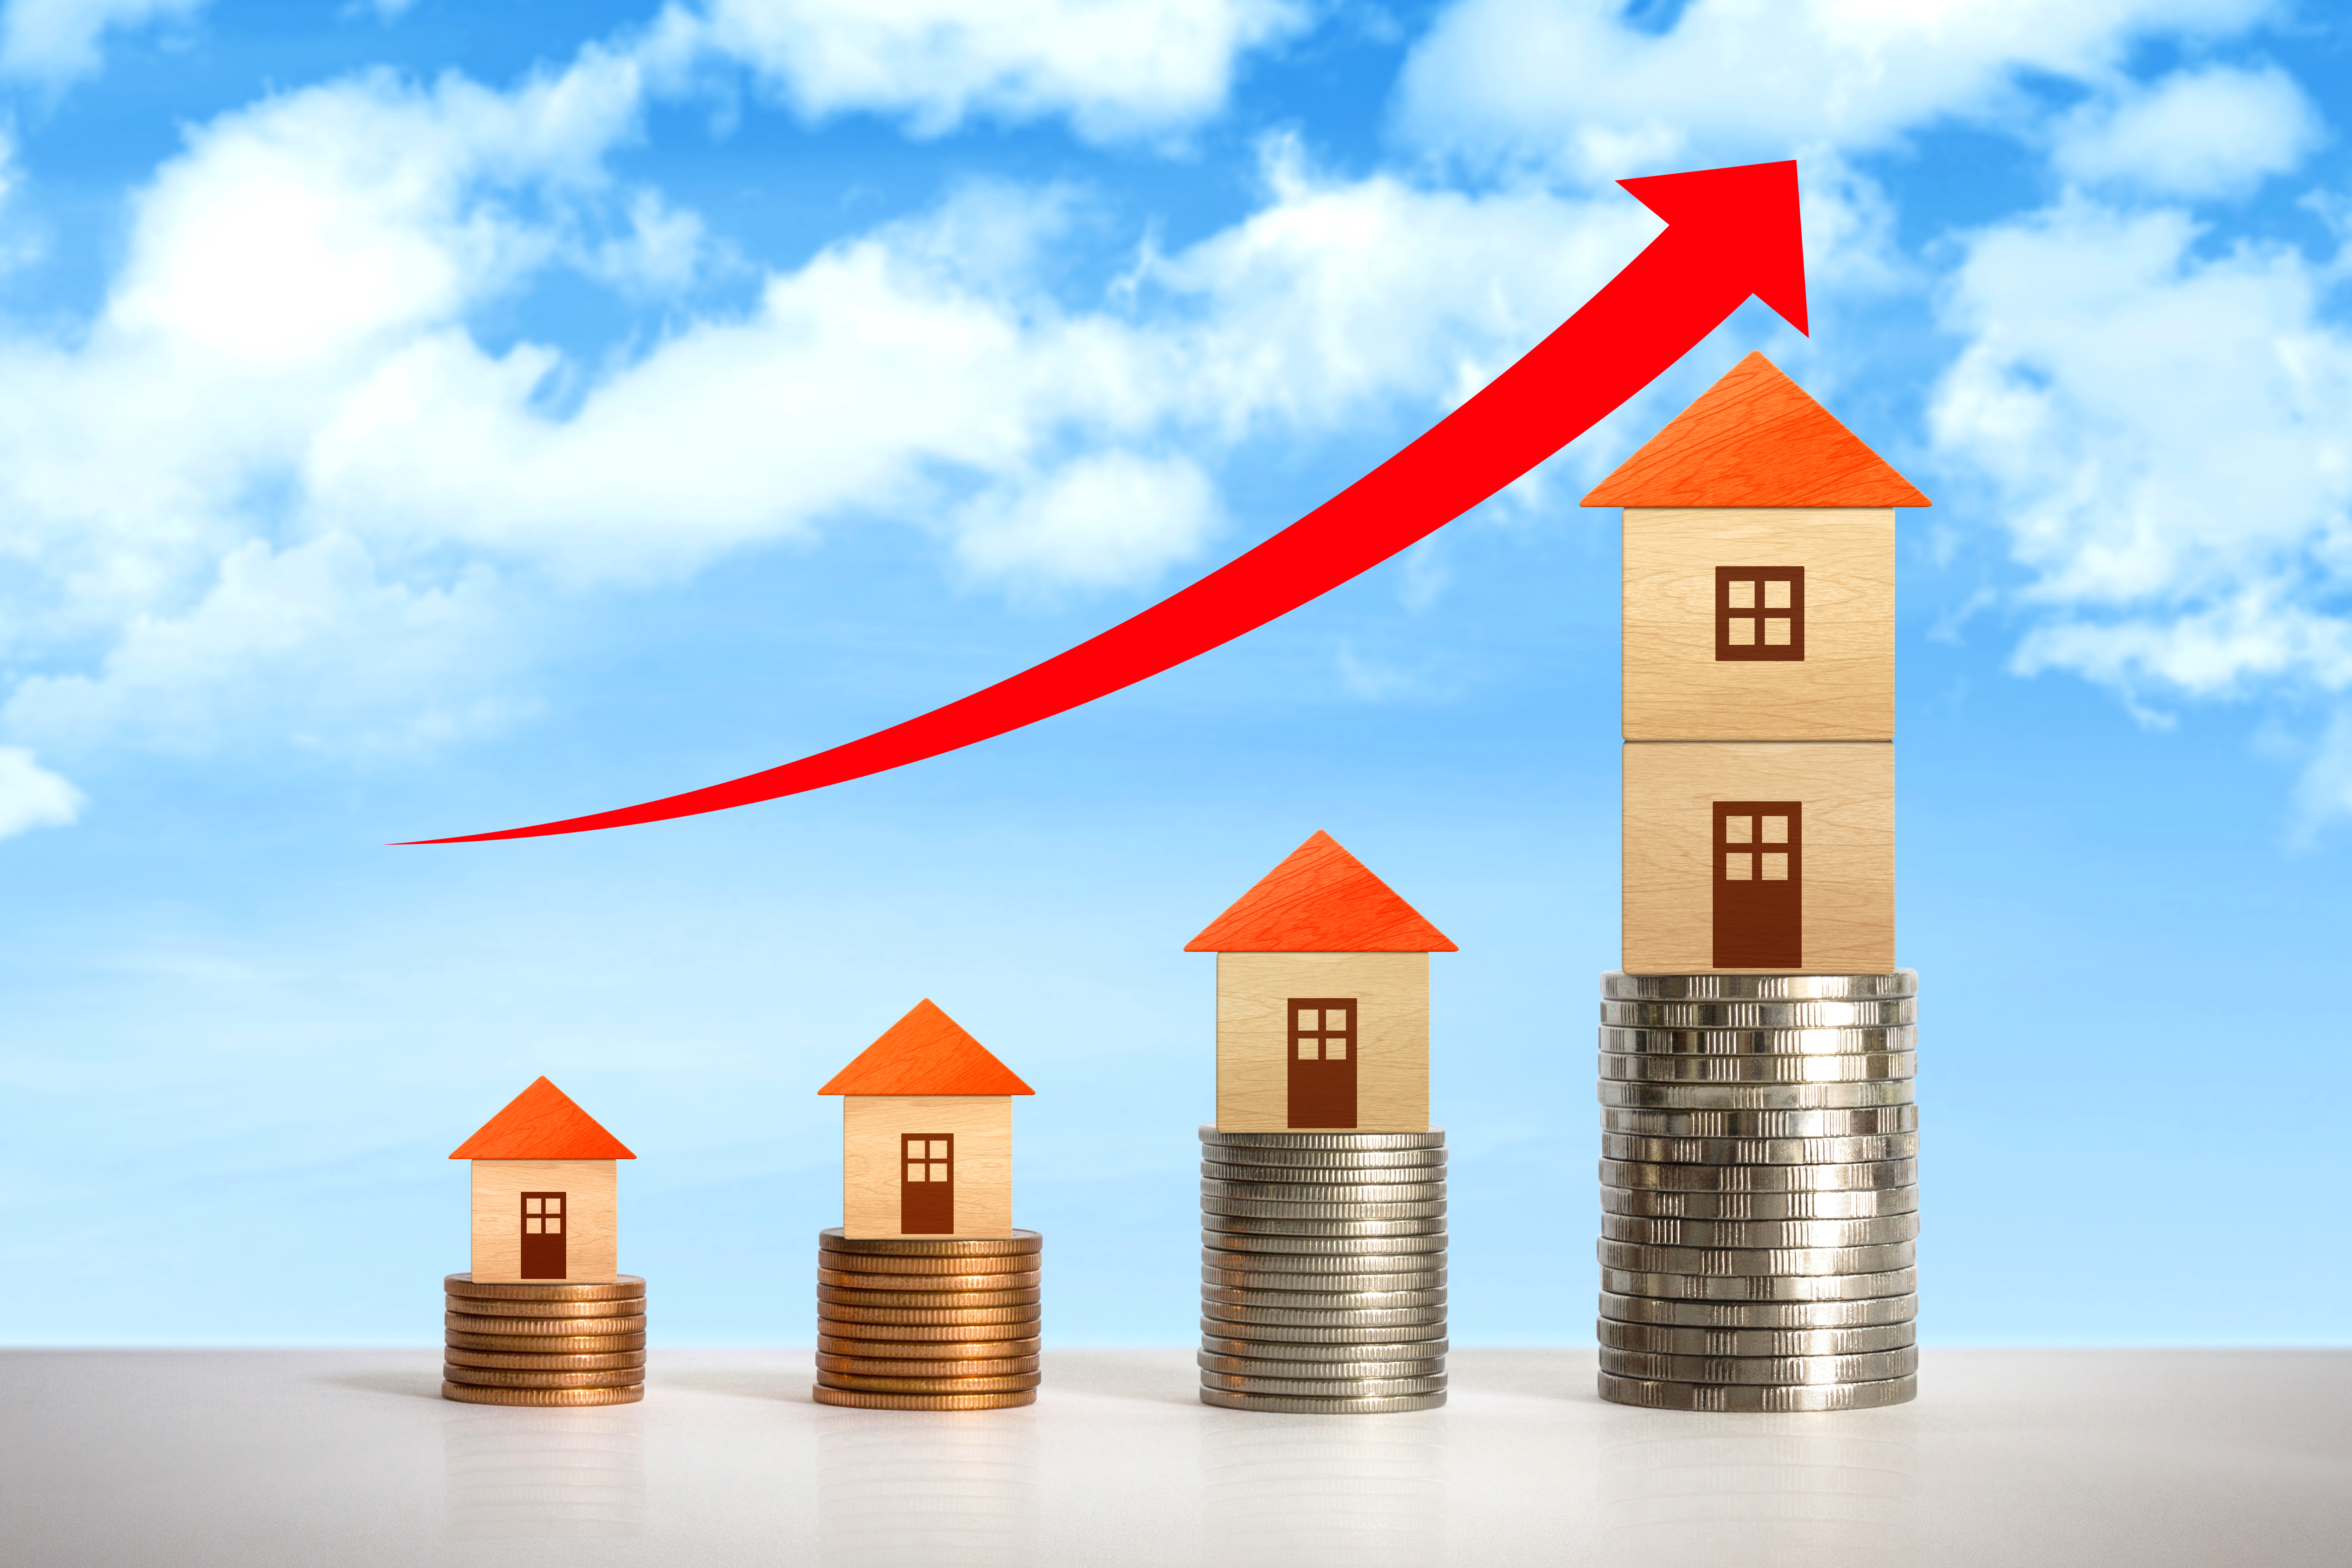 Buy your new home before continued strong buyer demand causes pricing to appreciate more!